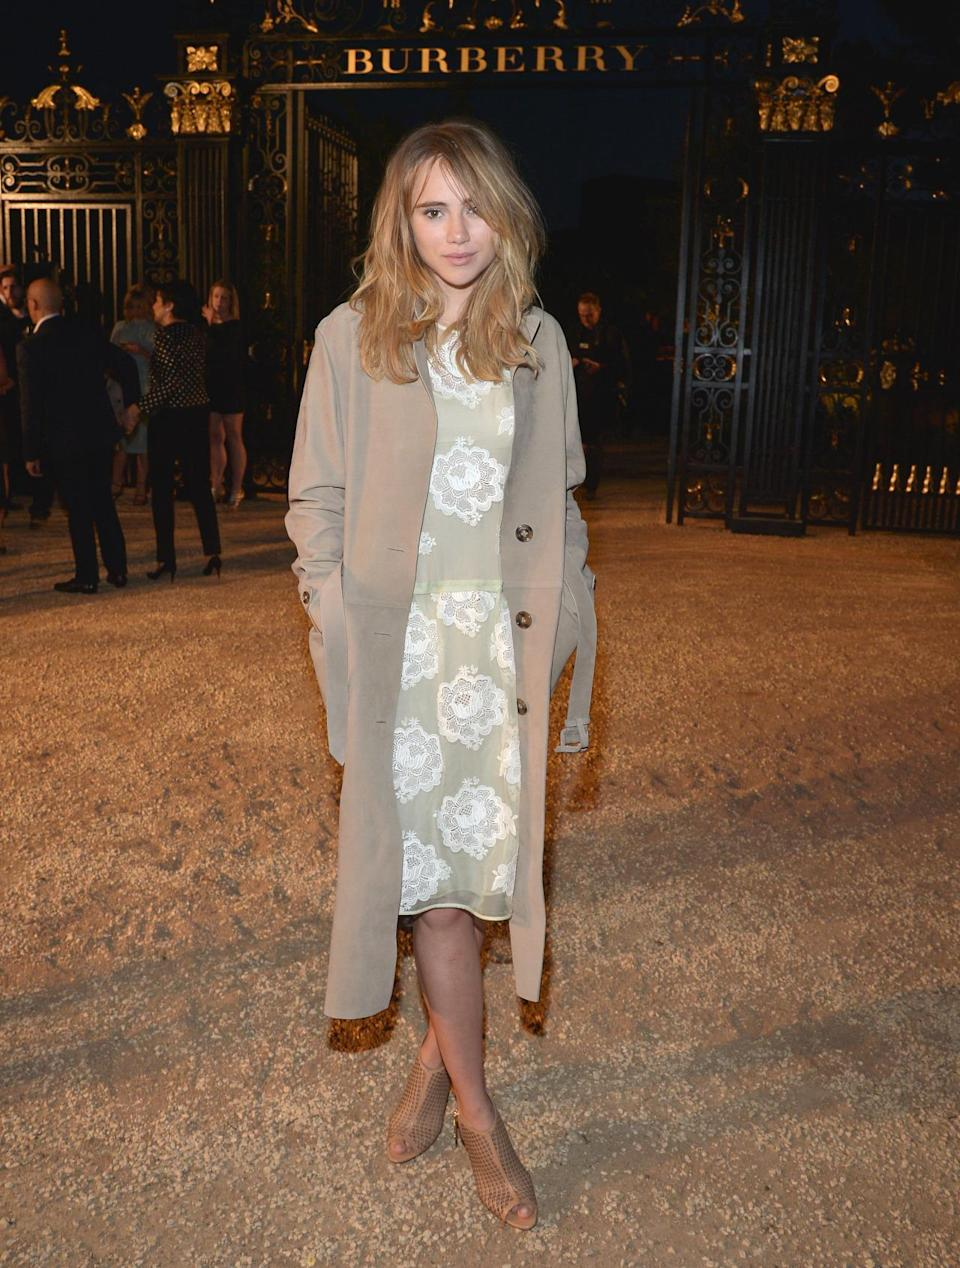 Suki Waterhouse in a floral beige dress with white flowers and khaki-colored coat represented Burberry in a classic, yet fresh, manner.